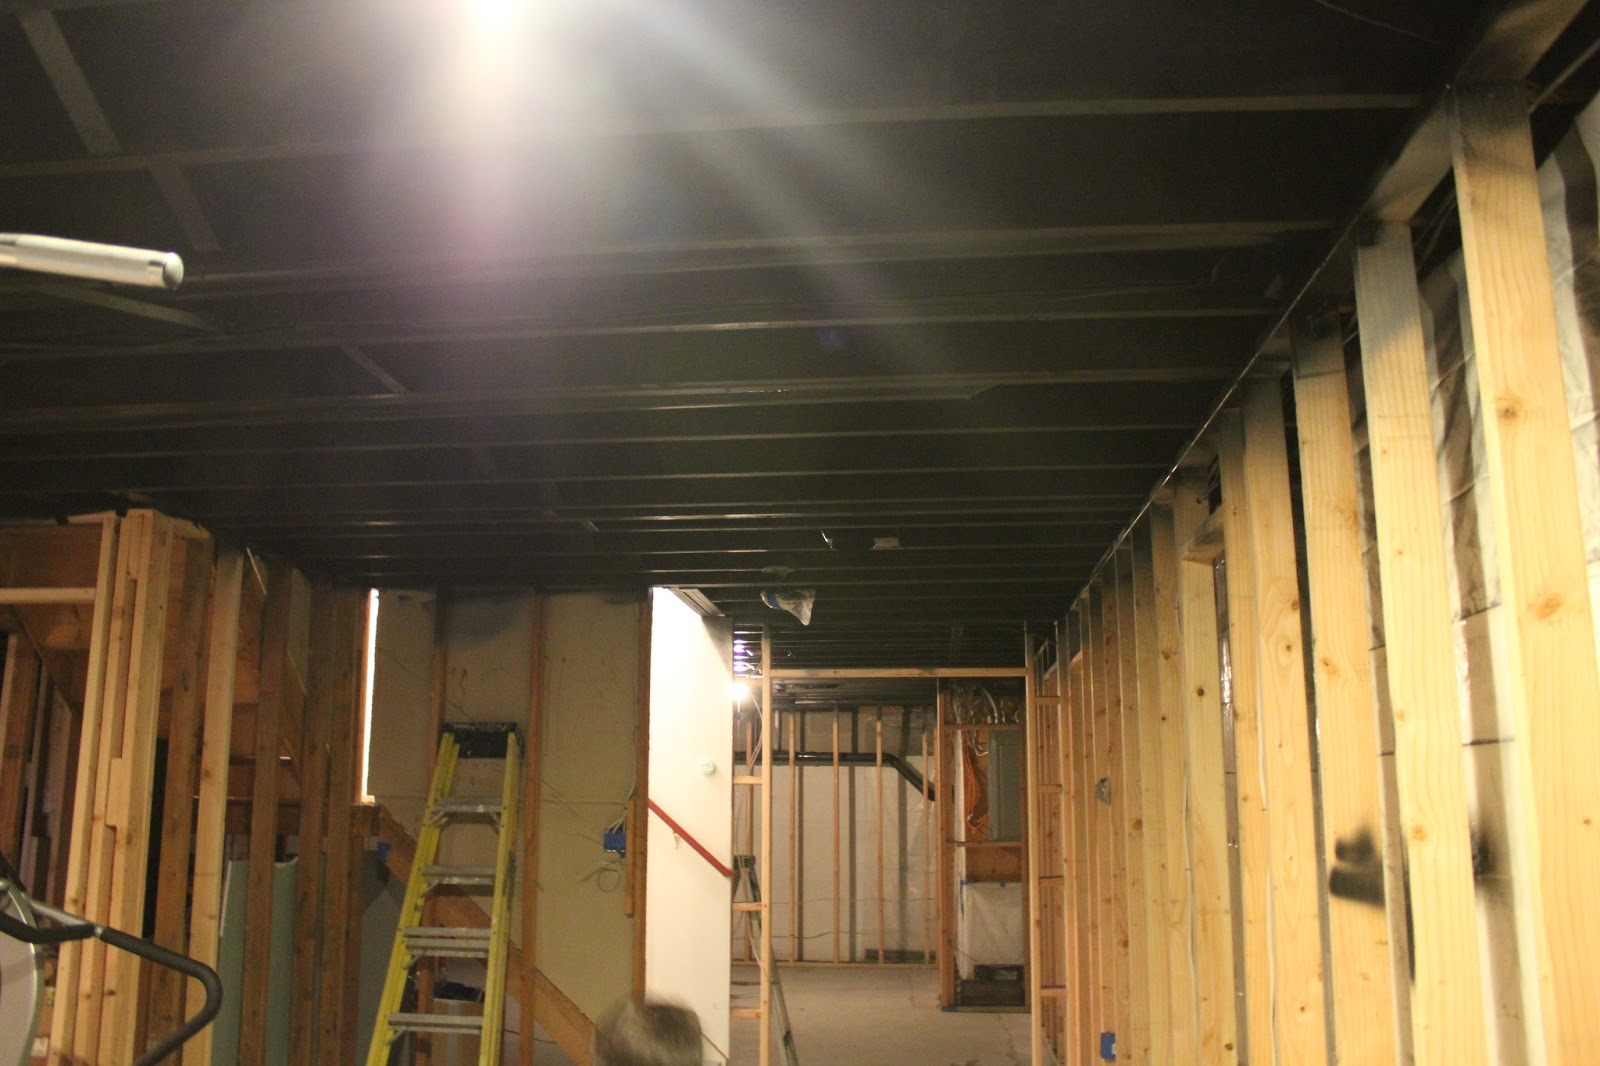 Unfinished basement ceiling paint unfinished basement ceiling paint unfinished basement ceiling paint unfinished basement ceiling paint d dailygadgetfo Images